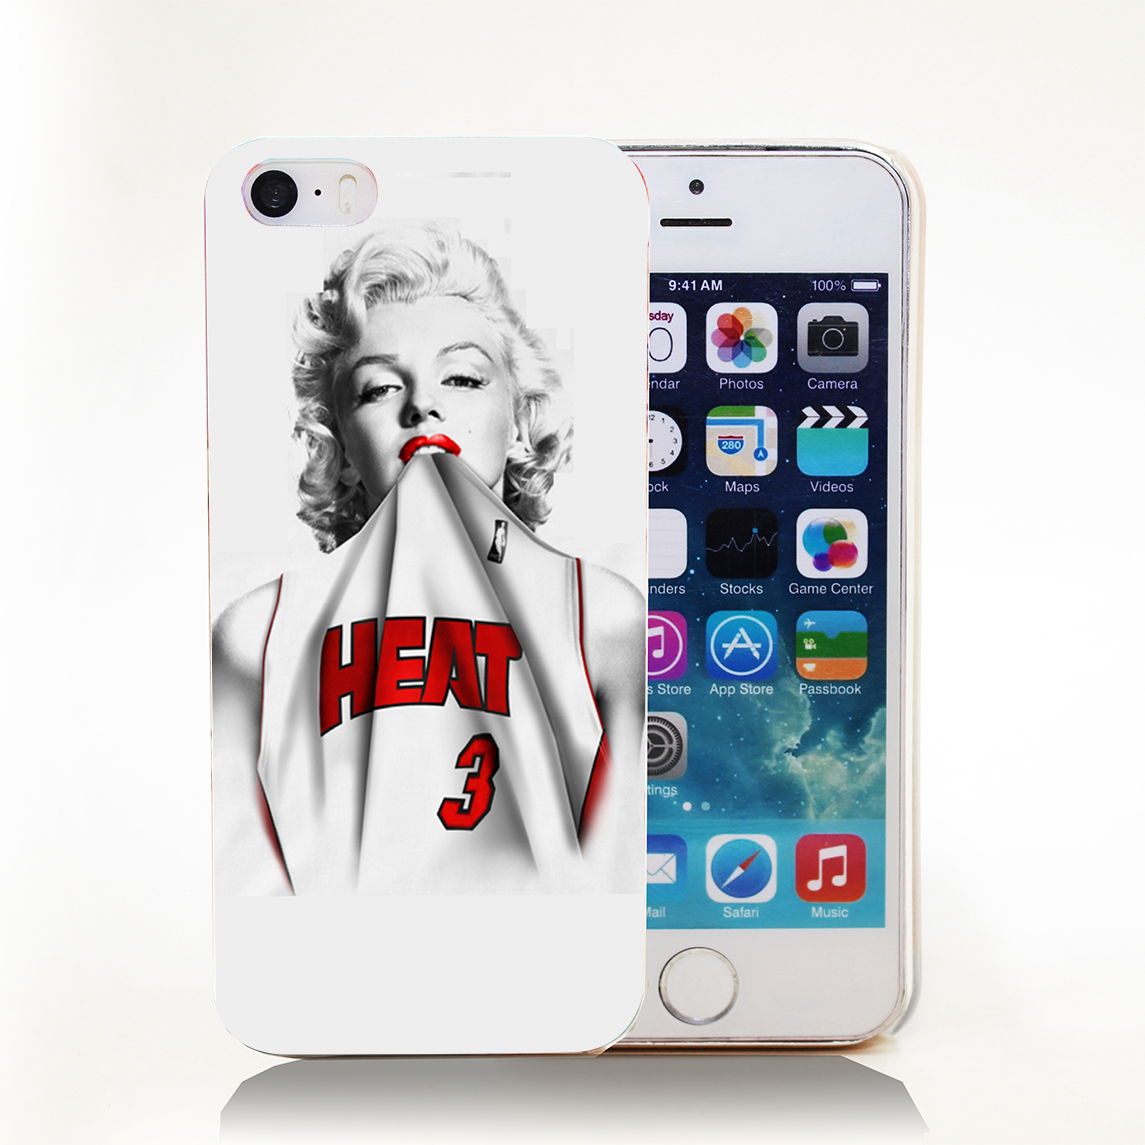 Marilyn Monroe Miami Heat Dwyane Wade 3 Jersey Hard Transparent Cover Case for iPhone 4 4s 5 5s 5c 6 6s Protect Phone Cases(China (Mainland))